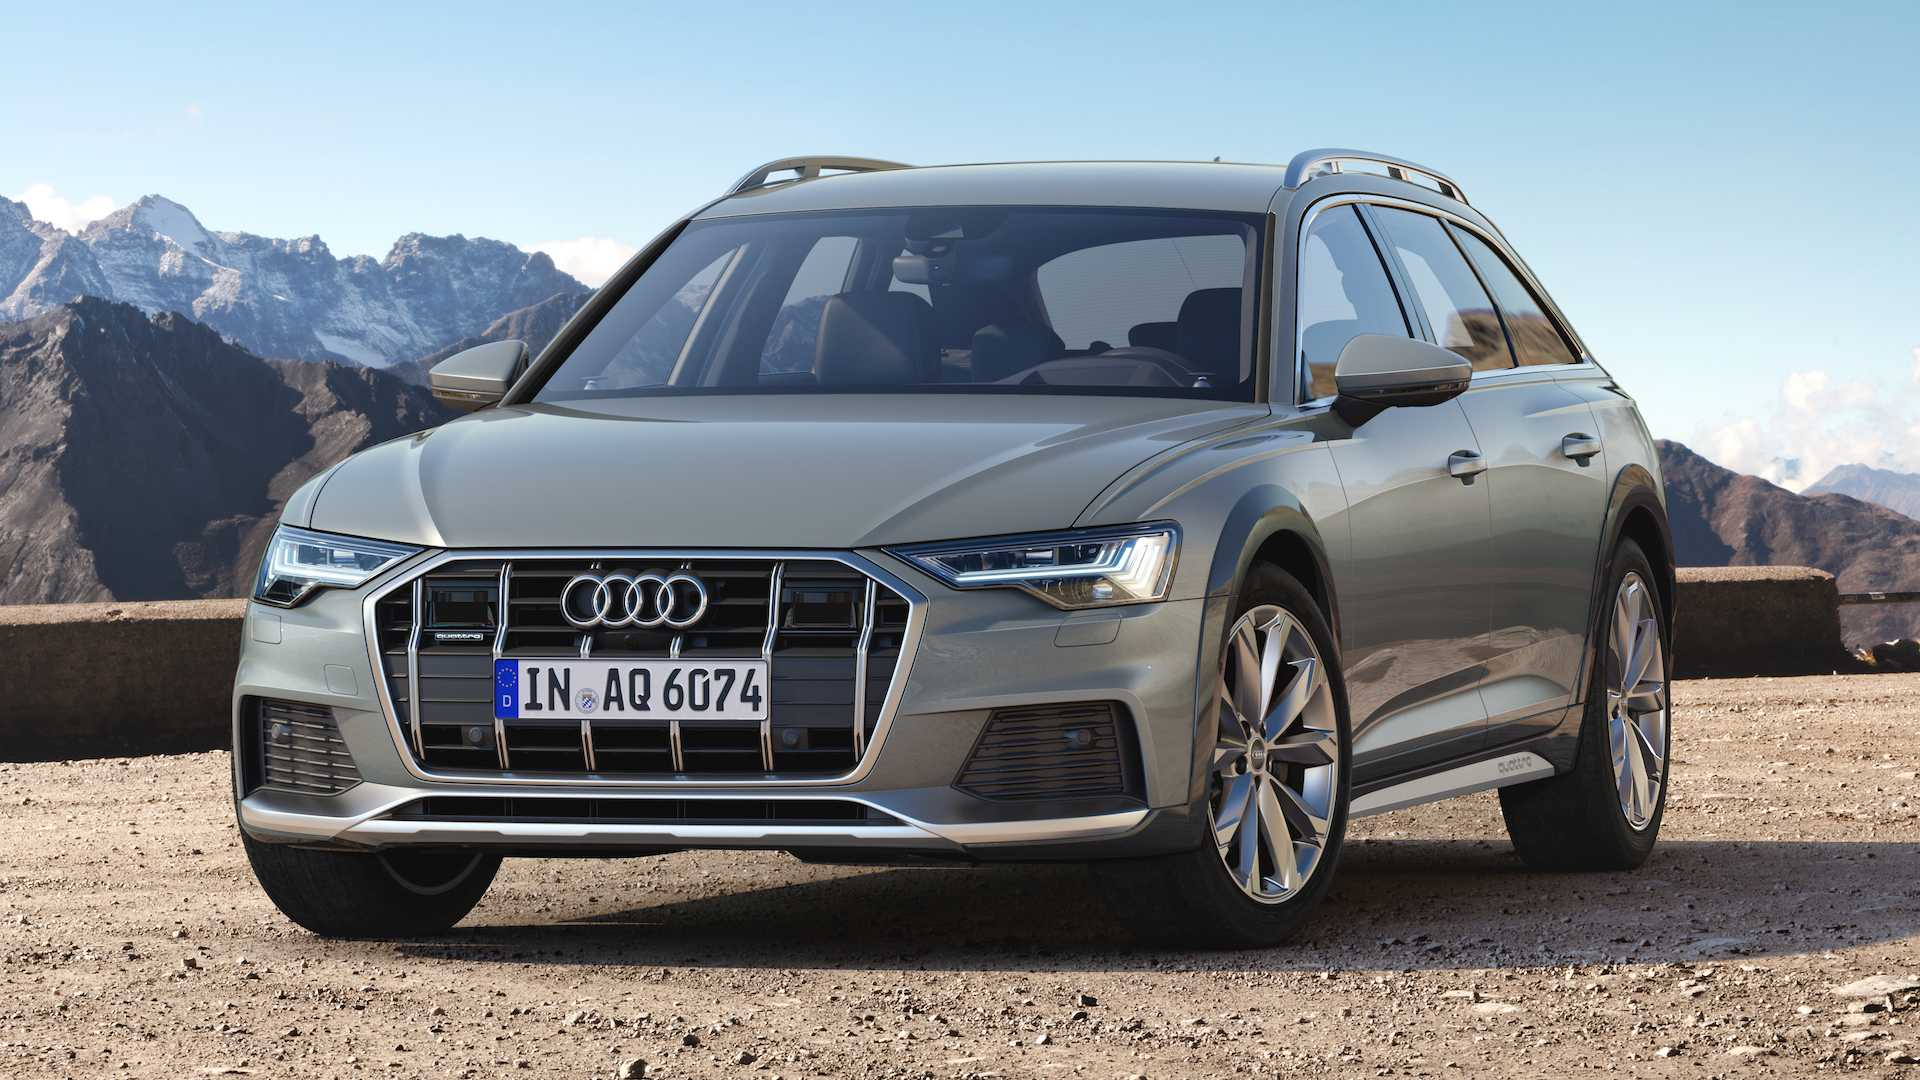 71 A Audi A6 2020 Price And Release Date